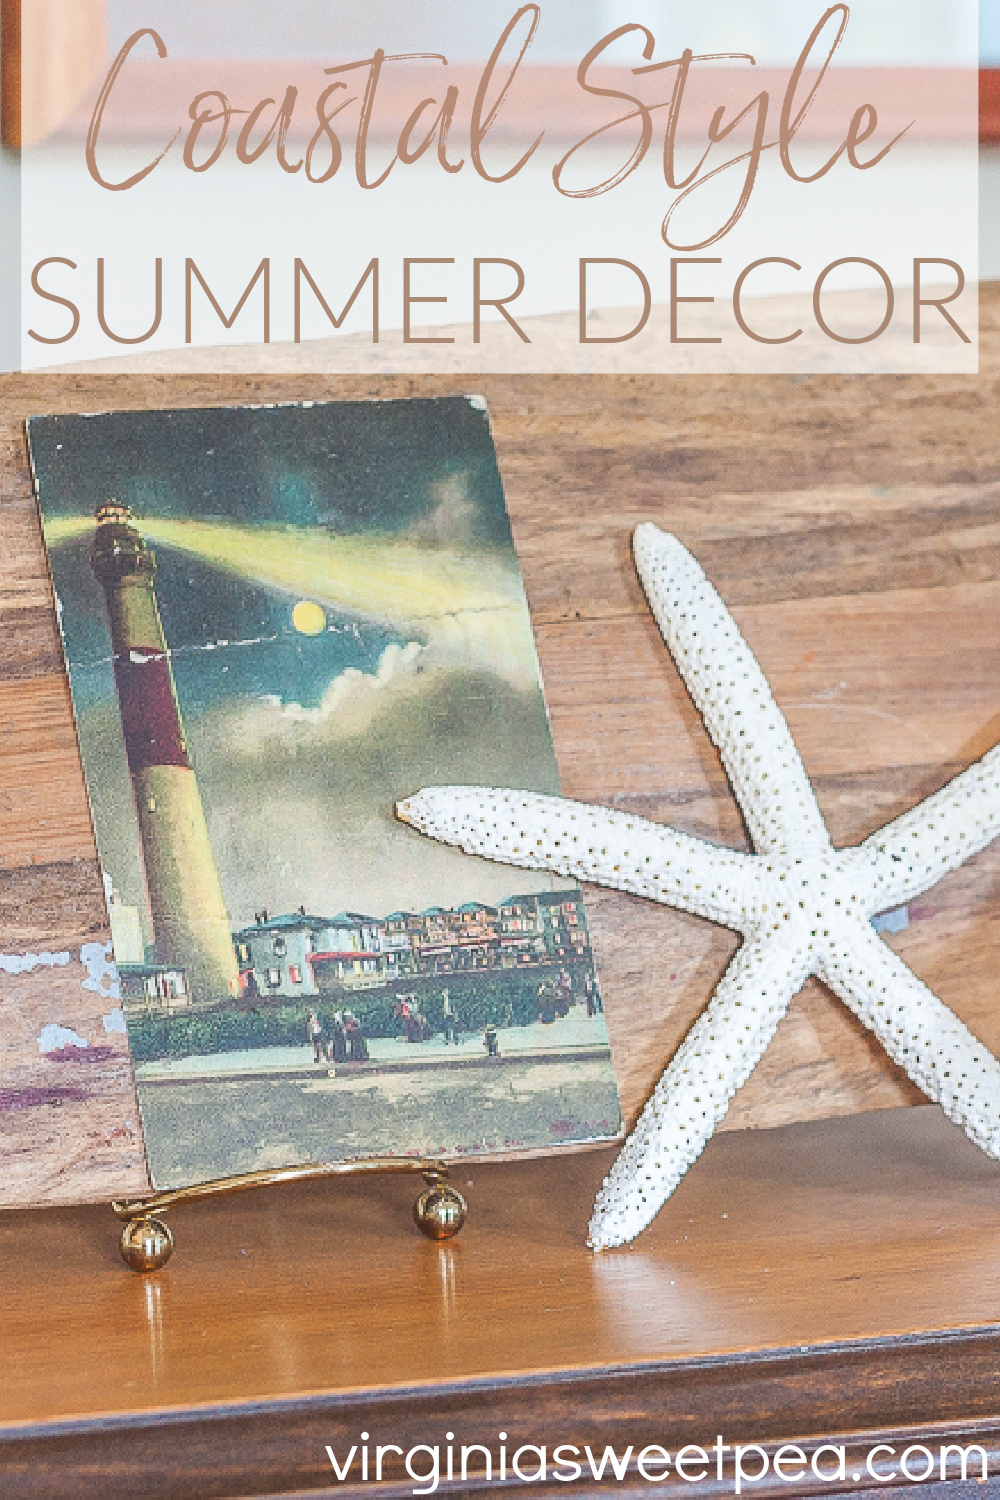 Coastal Style Summer Decor - Get ideas for decorating a home with coastal elements for summer. #coastaldecor #coastal #coastaldecorations via @spaula